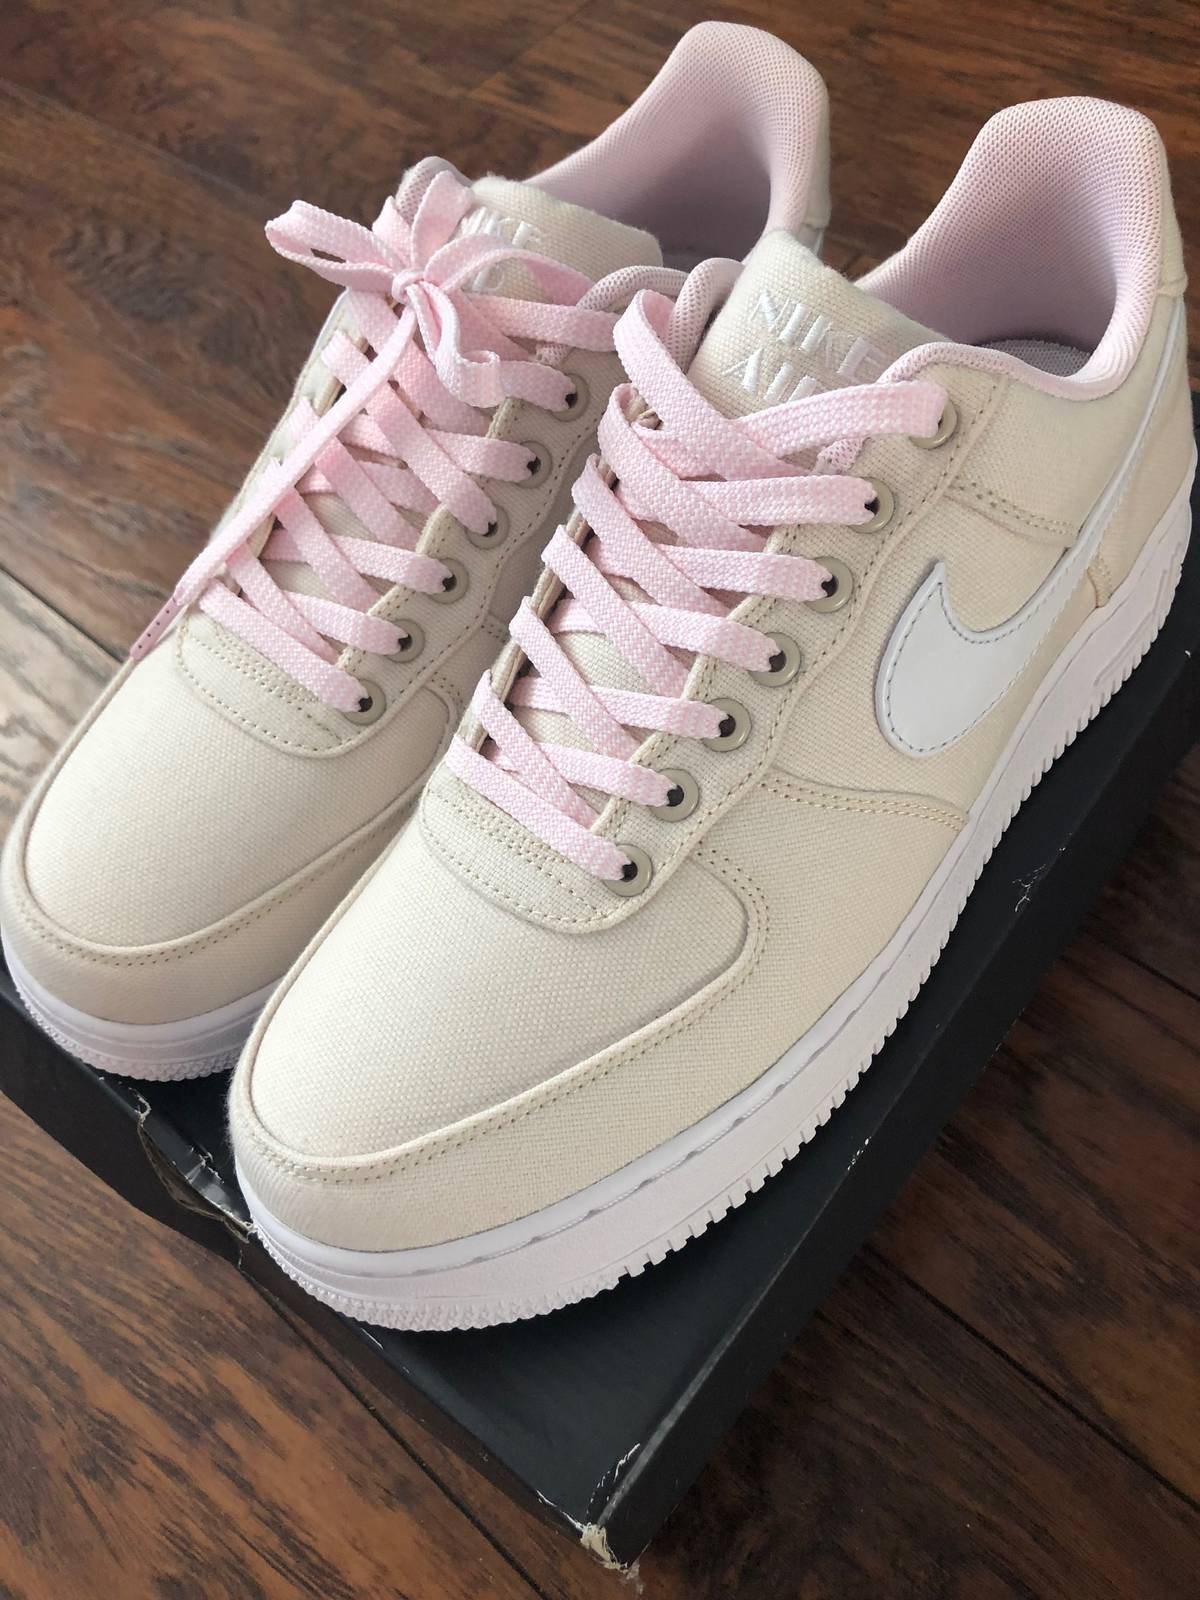 823361923d3 Nike Air Force 1 Miami Vice Natural Linen Canvas Size 9.5 $137